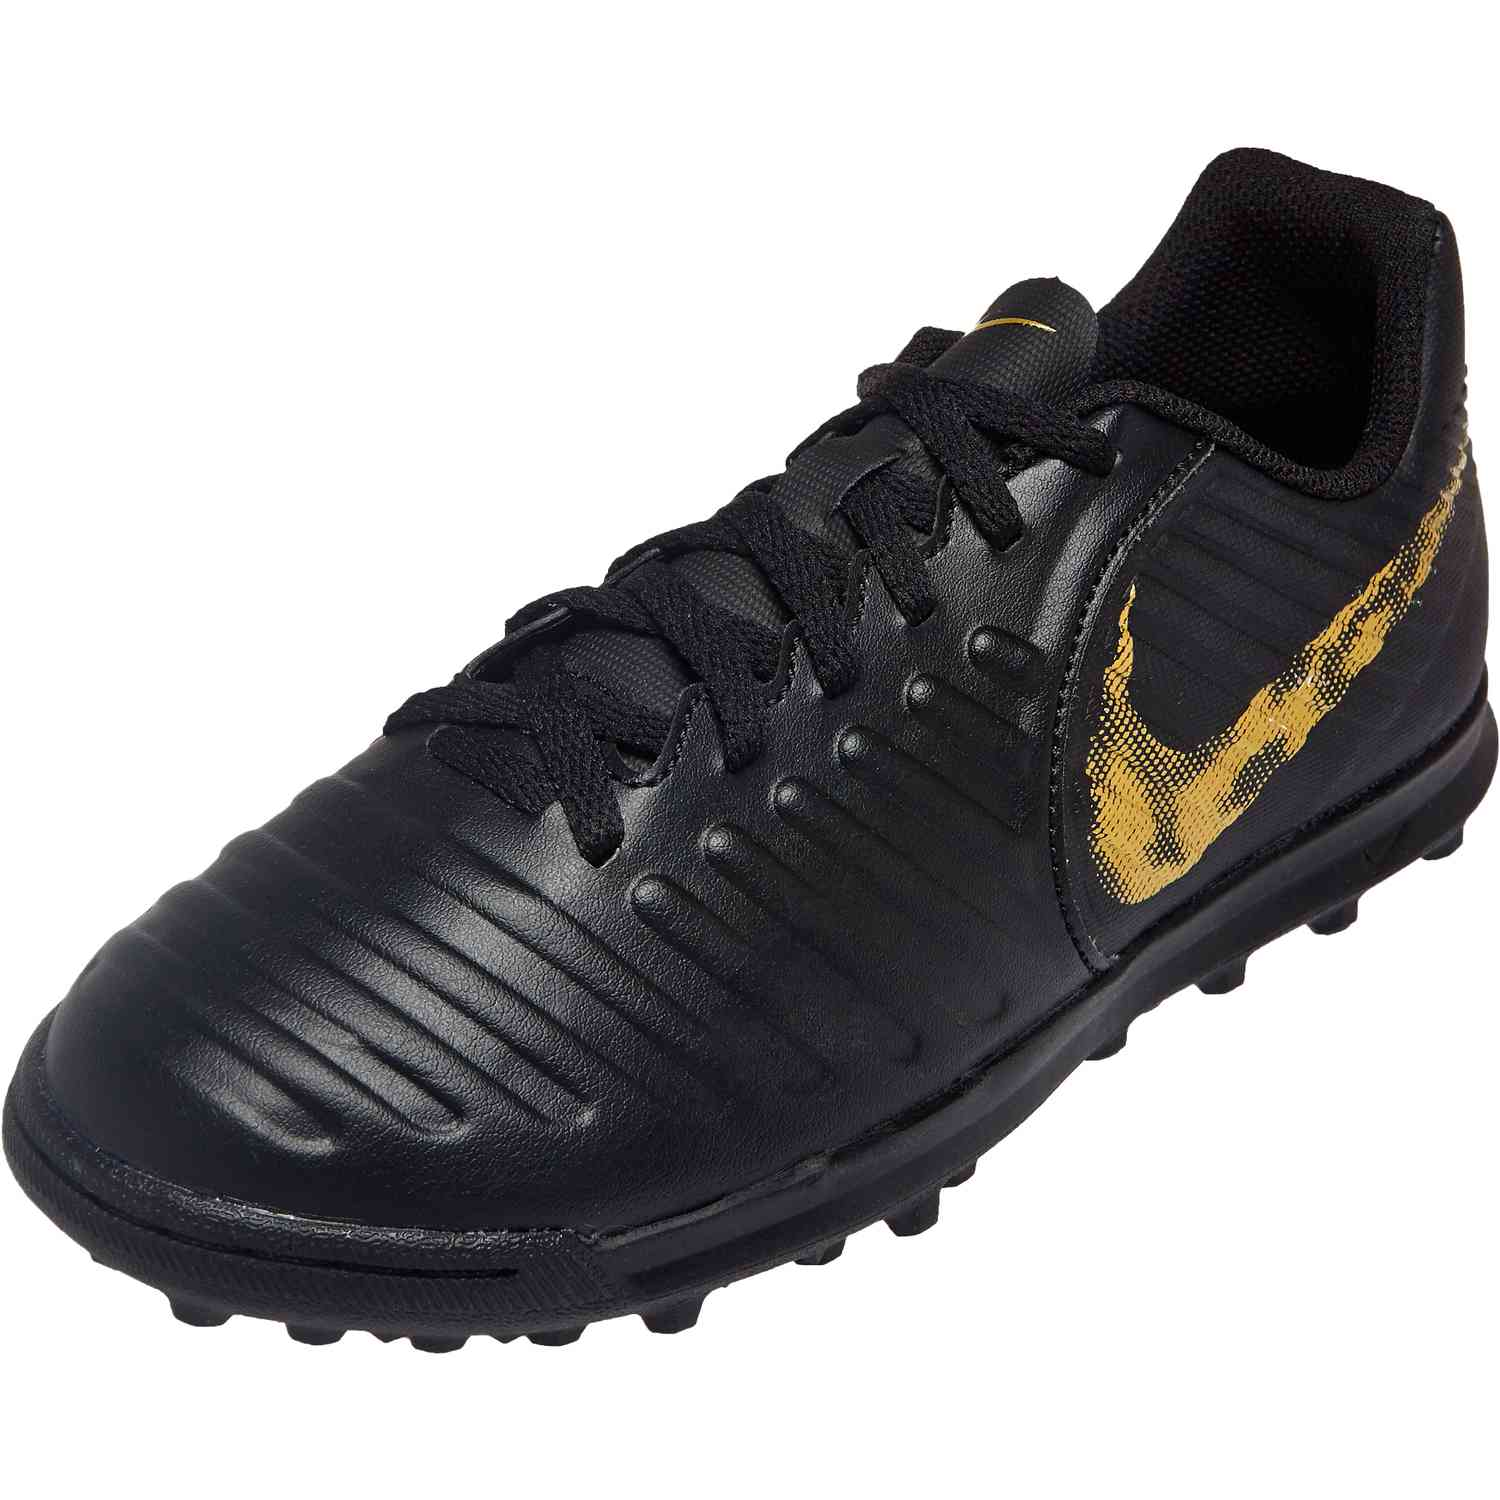 95dfdcb3fd Kids Nike Tiempo Legend 7 Club TF - Black Lux - SoccerPro